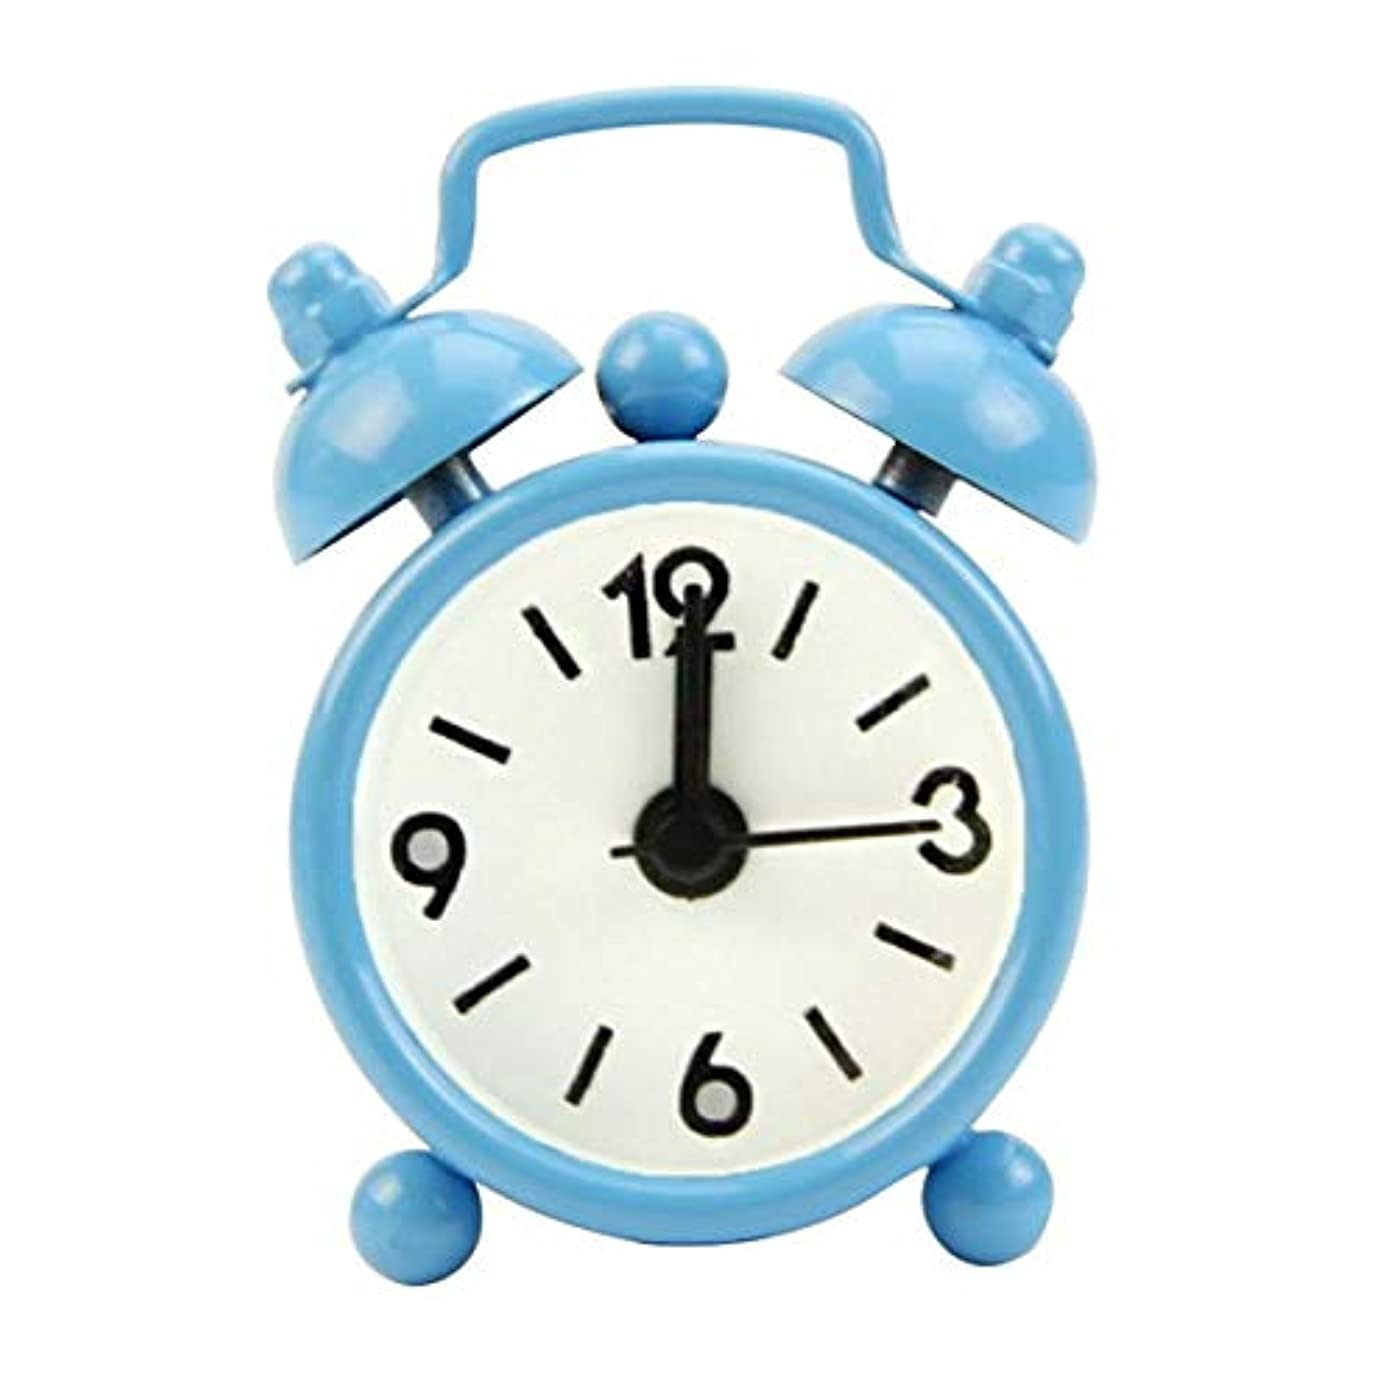 Round Desk Alarm Clock - Home Outdoor Portable Cute Mini Cartoon Dial Number Round Desk Alarm Clock - System Mini Cute Desktop Clock Desktop Clock Clock Clock Clock Clocks Clock Number Child Led